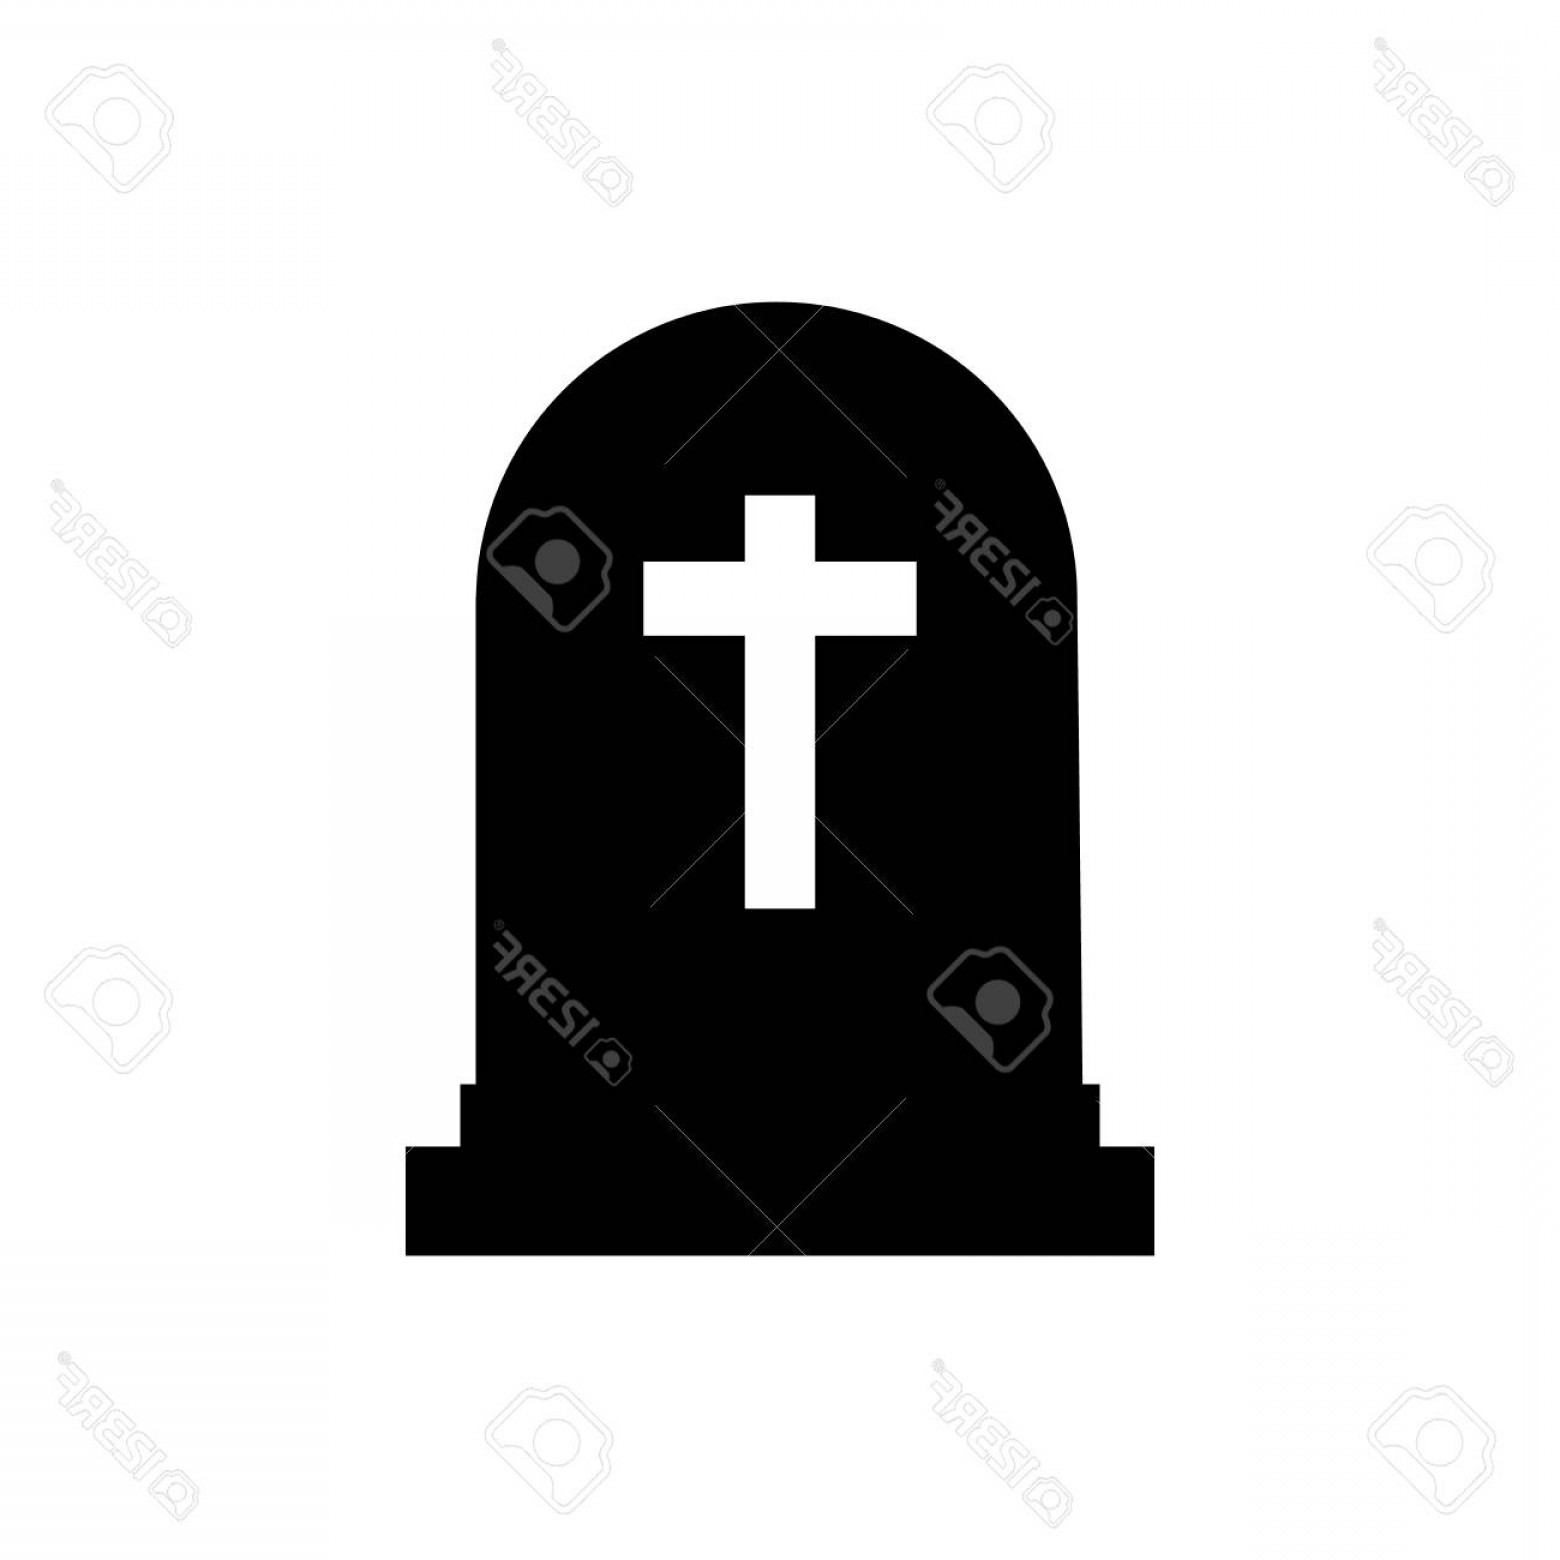 Gravestone Outline Vector: Photostock Illustration Halloween Grave Icon Silhouette Gravestone Vector Illustration Rip Tombstone Flat Icon